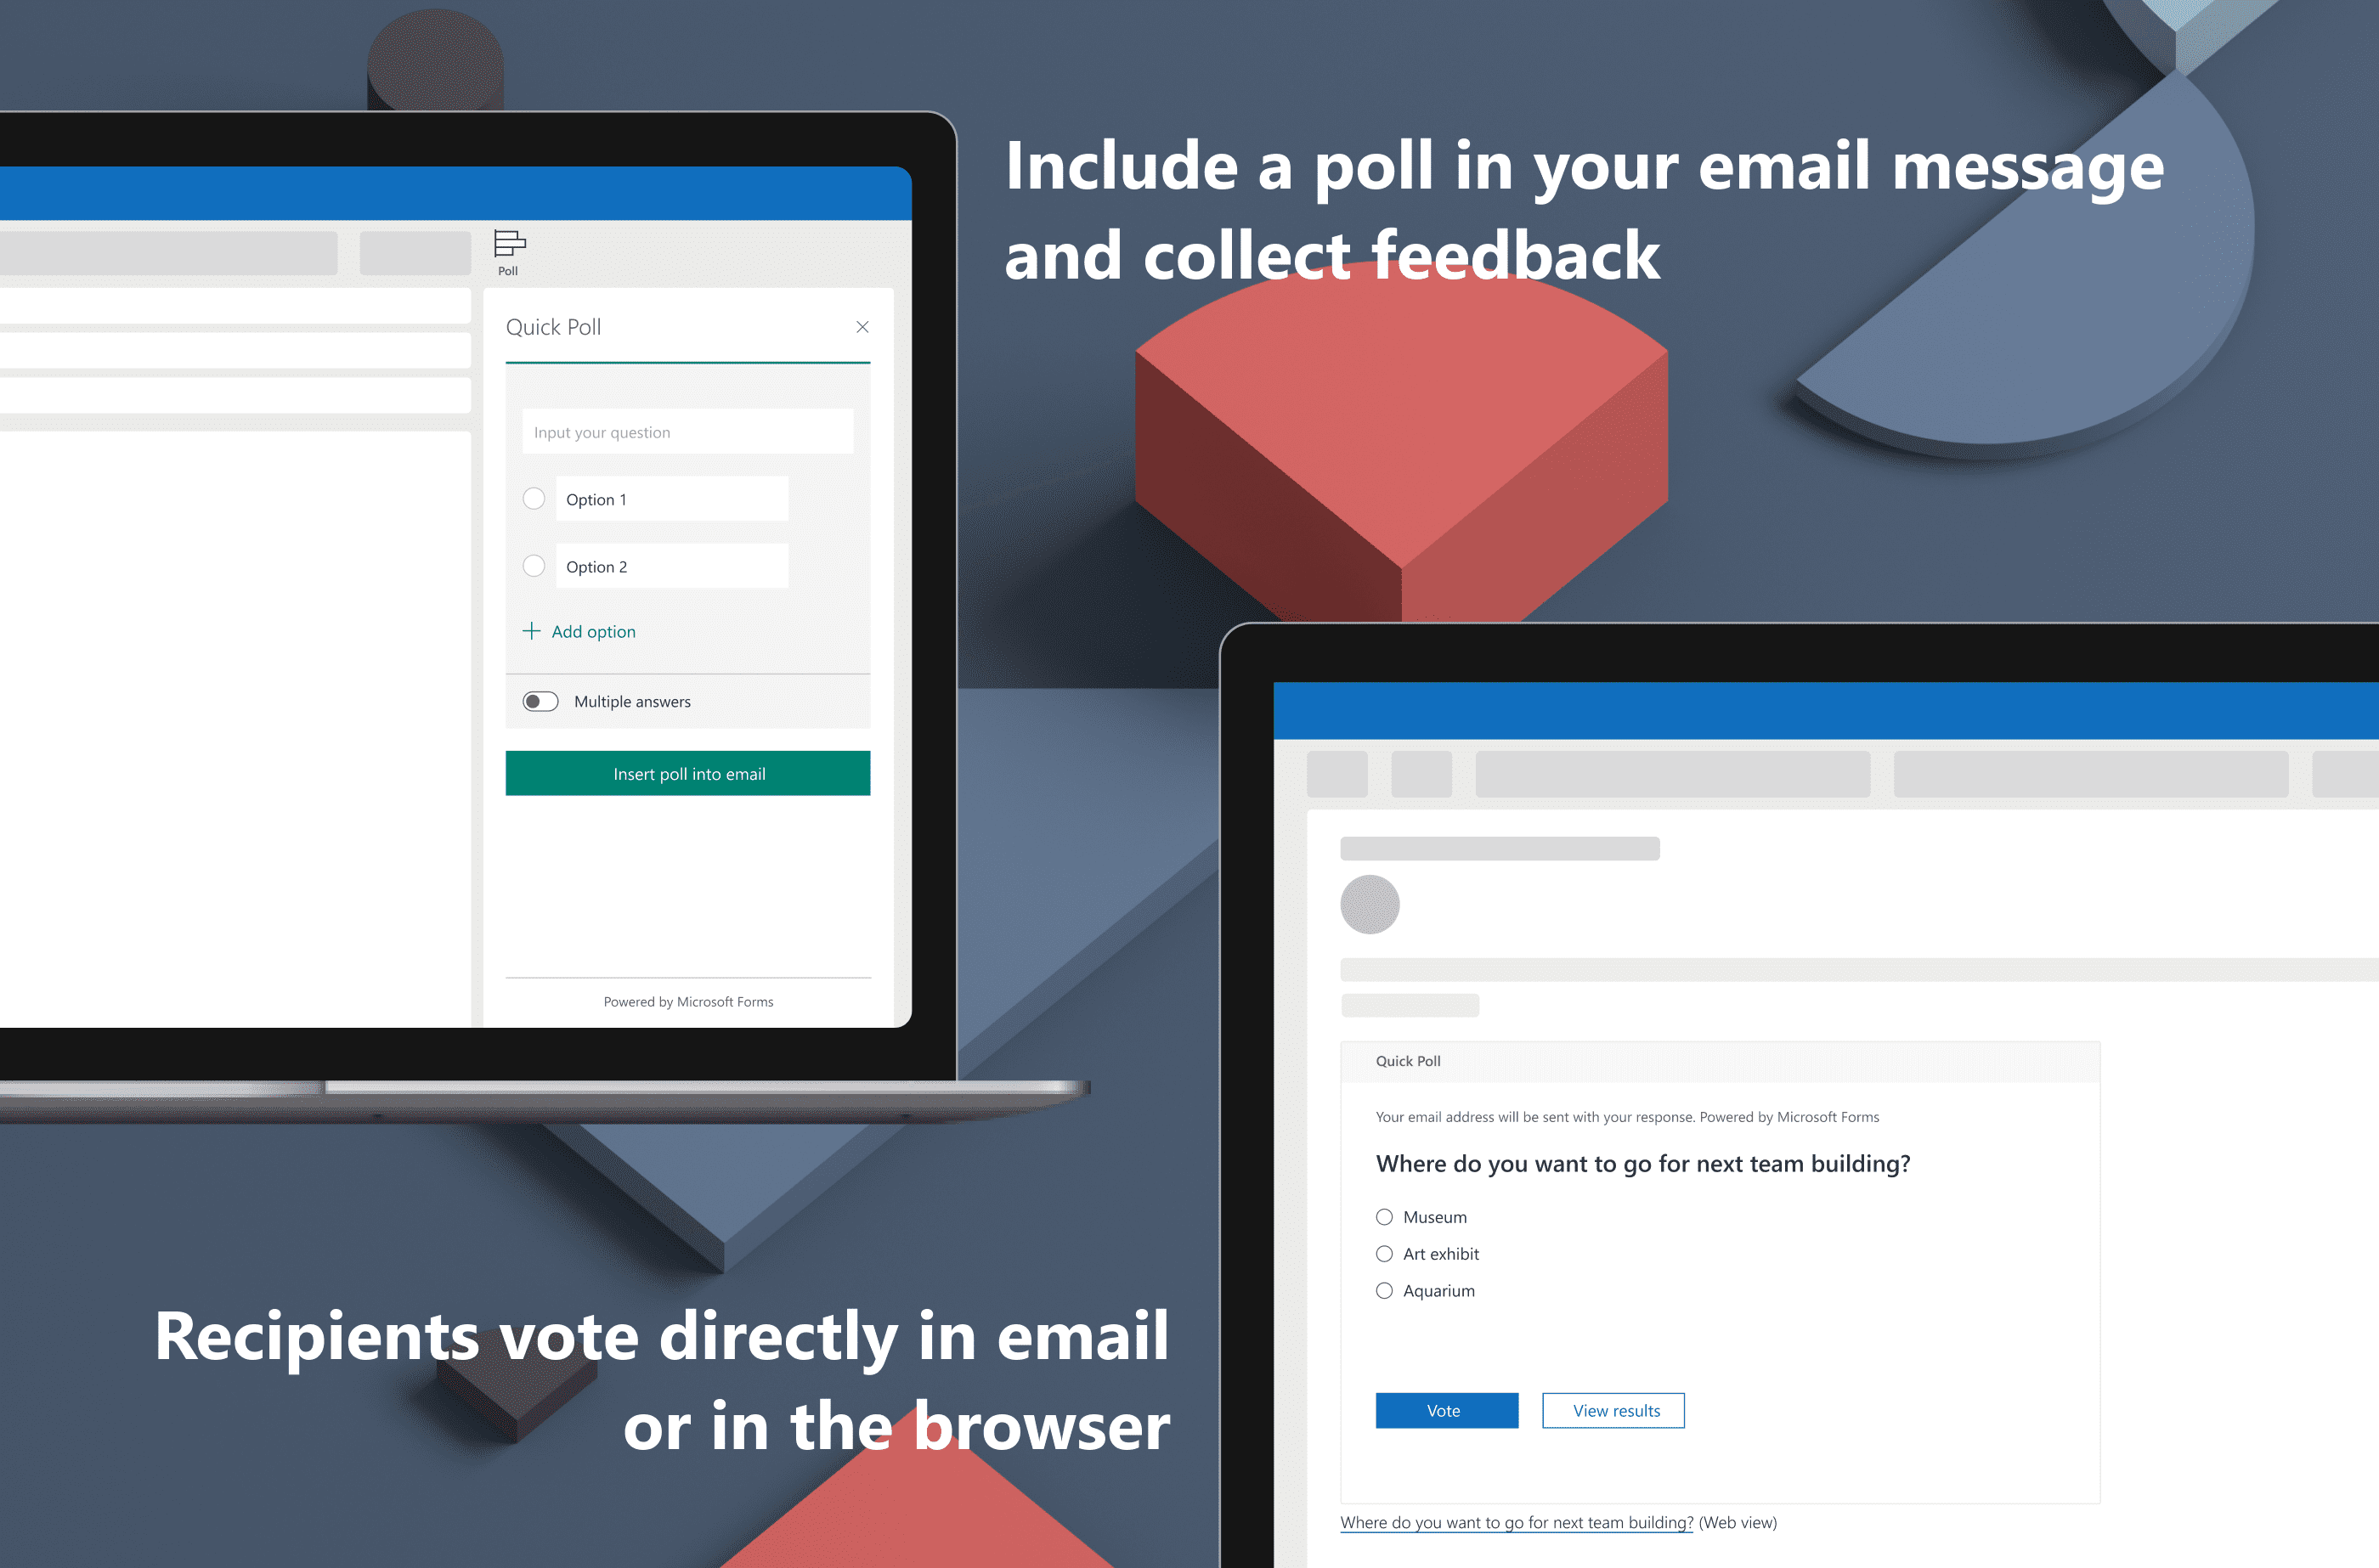 An image showing how easily you votes, and view results within an email.g how you can